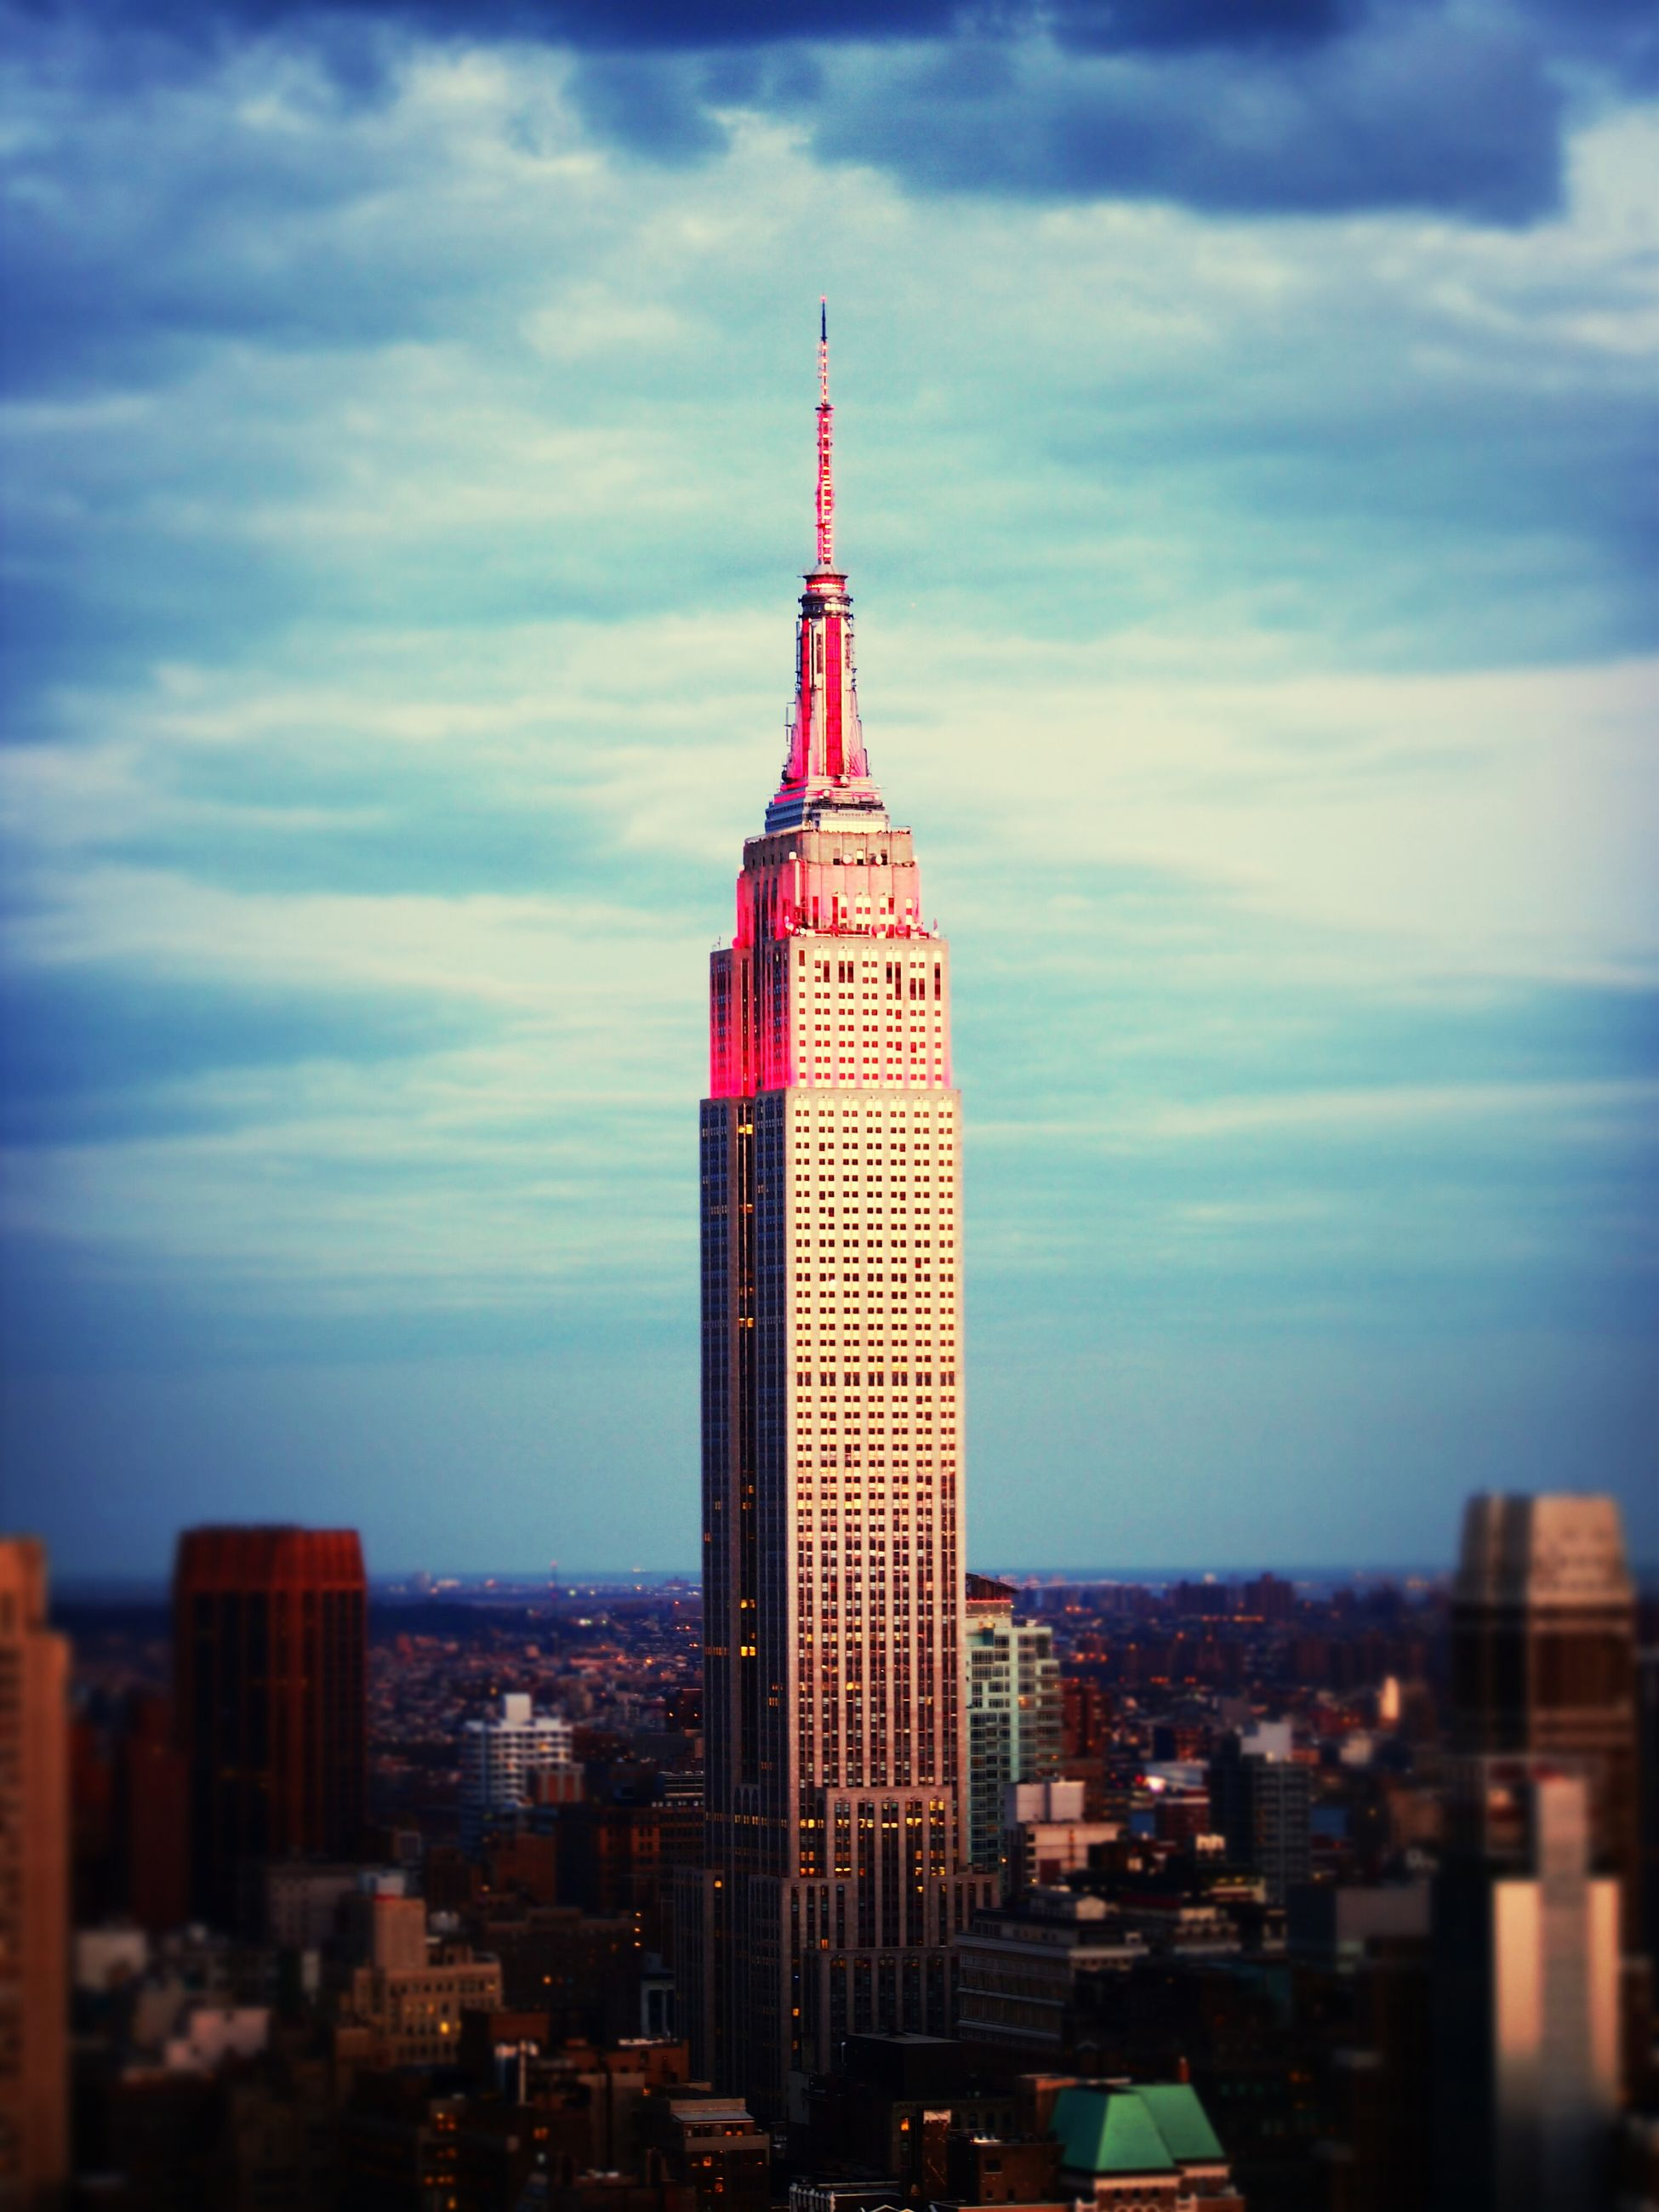 architecture, building exterior, built structure, city, tower, sky, cityscape, tall - high, skyscraper, cloud - sky, capital cities, modern, cloudy, cloud, travel destinations, office building, famous place, city life, tall, empire state building